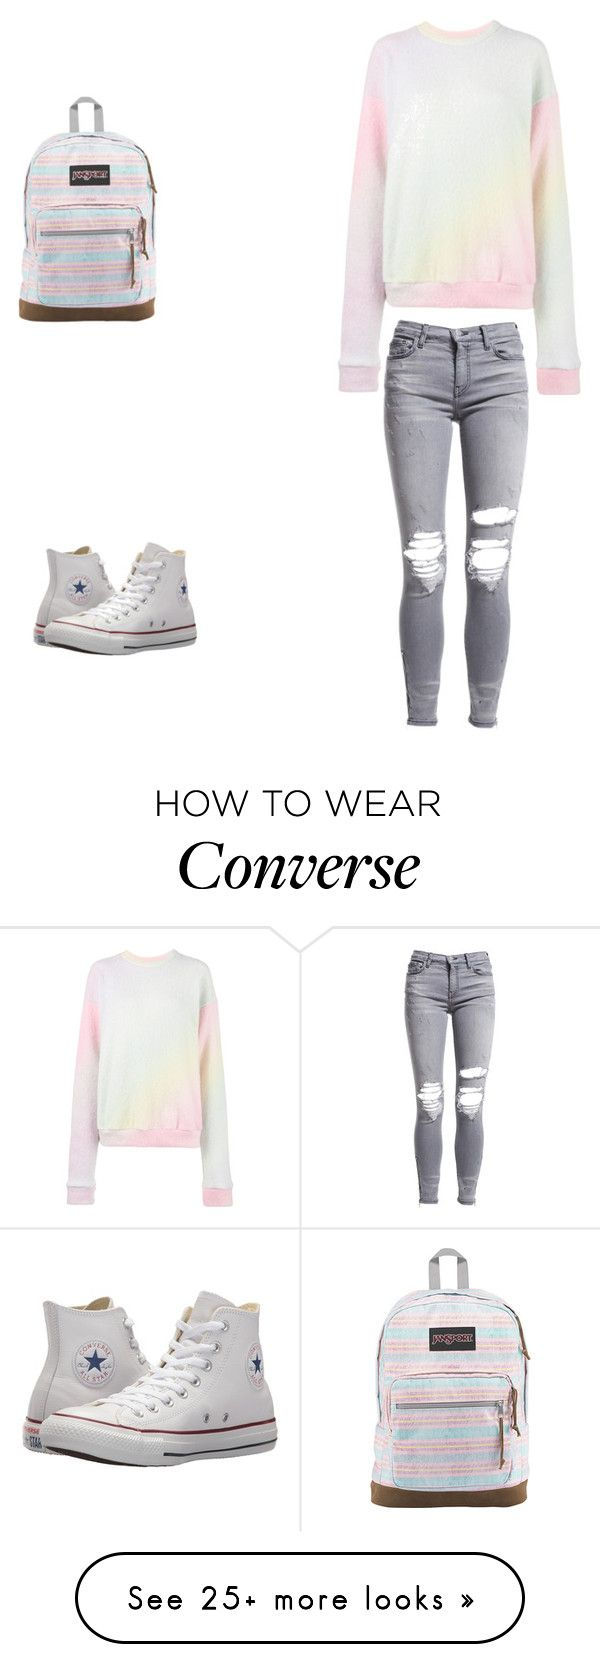 """Untitled #100"" by nikita0316 on Polyvore featuring AMIRI, The Elder Statesman, Converse, JanSport and pastelsweaters"